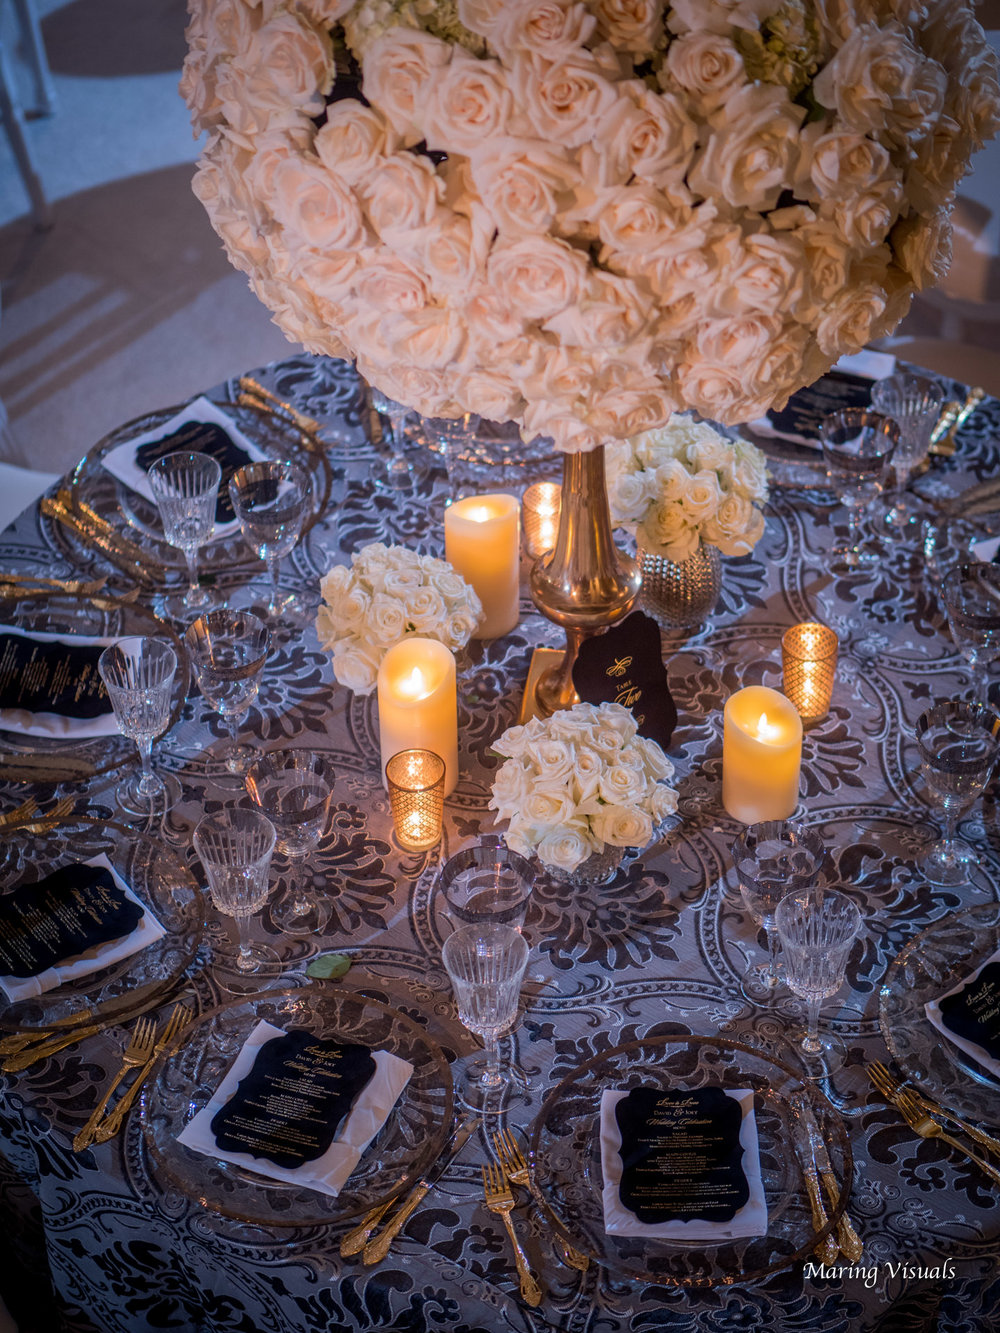 David Tutera Weddings by Maring Visuals 00543.jpg